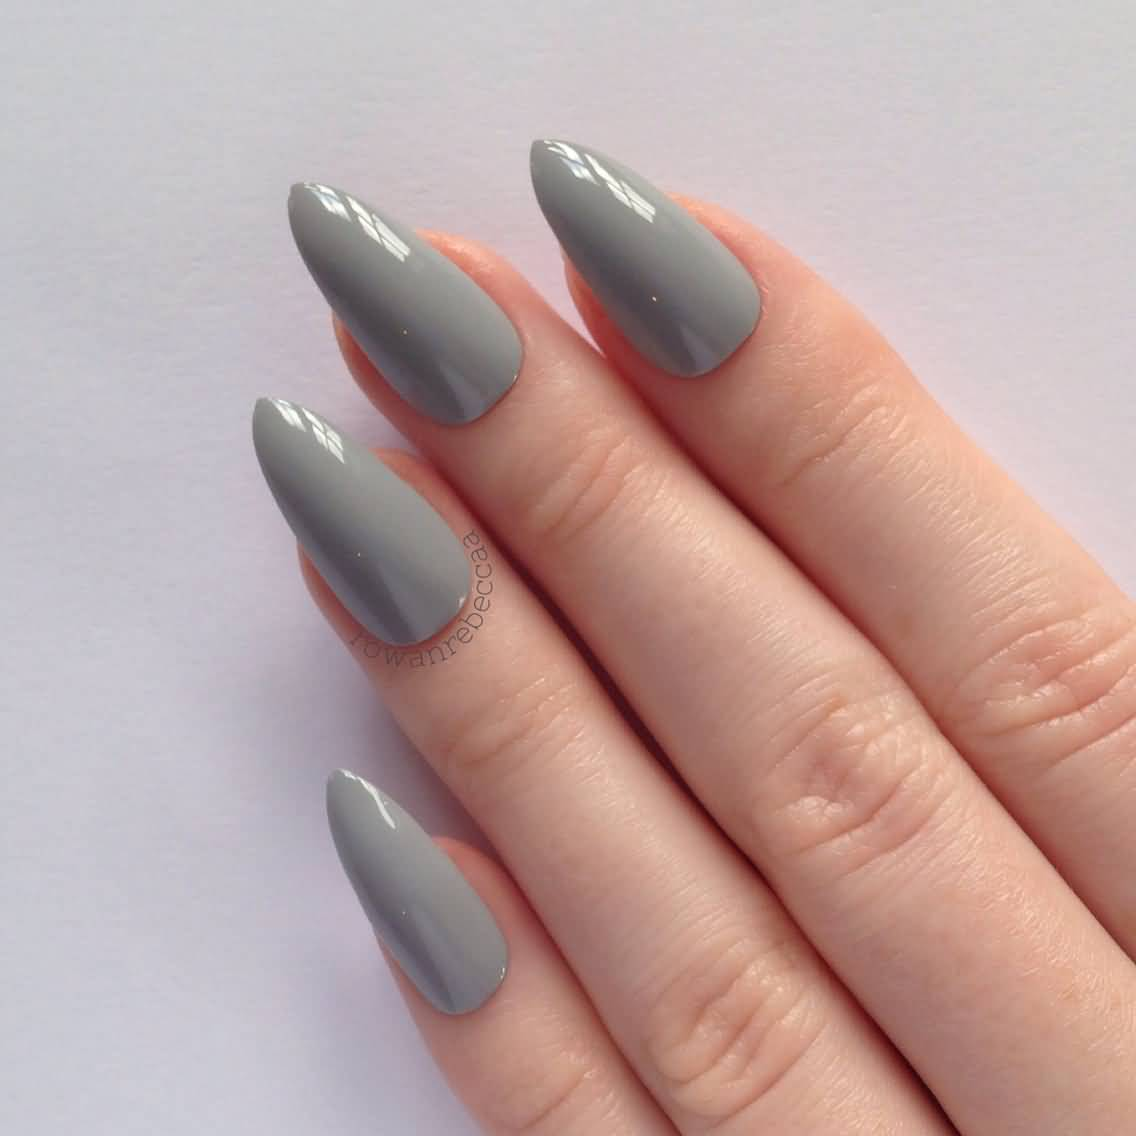 20 Stylish Acrylic Gray Nail Art Design